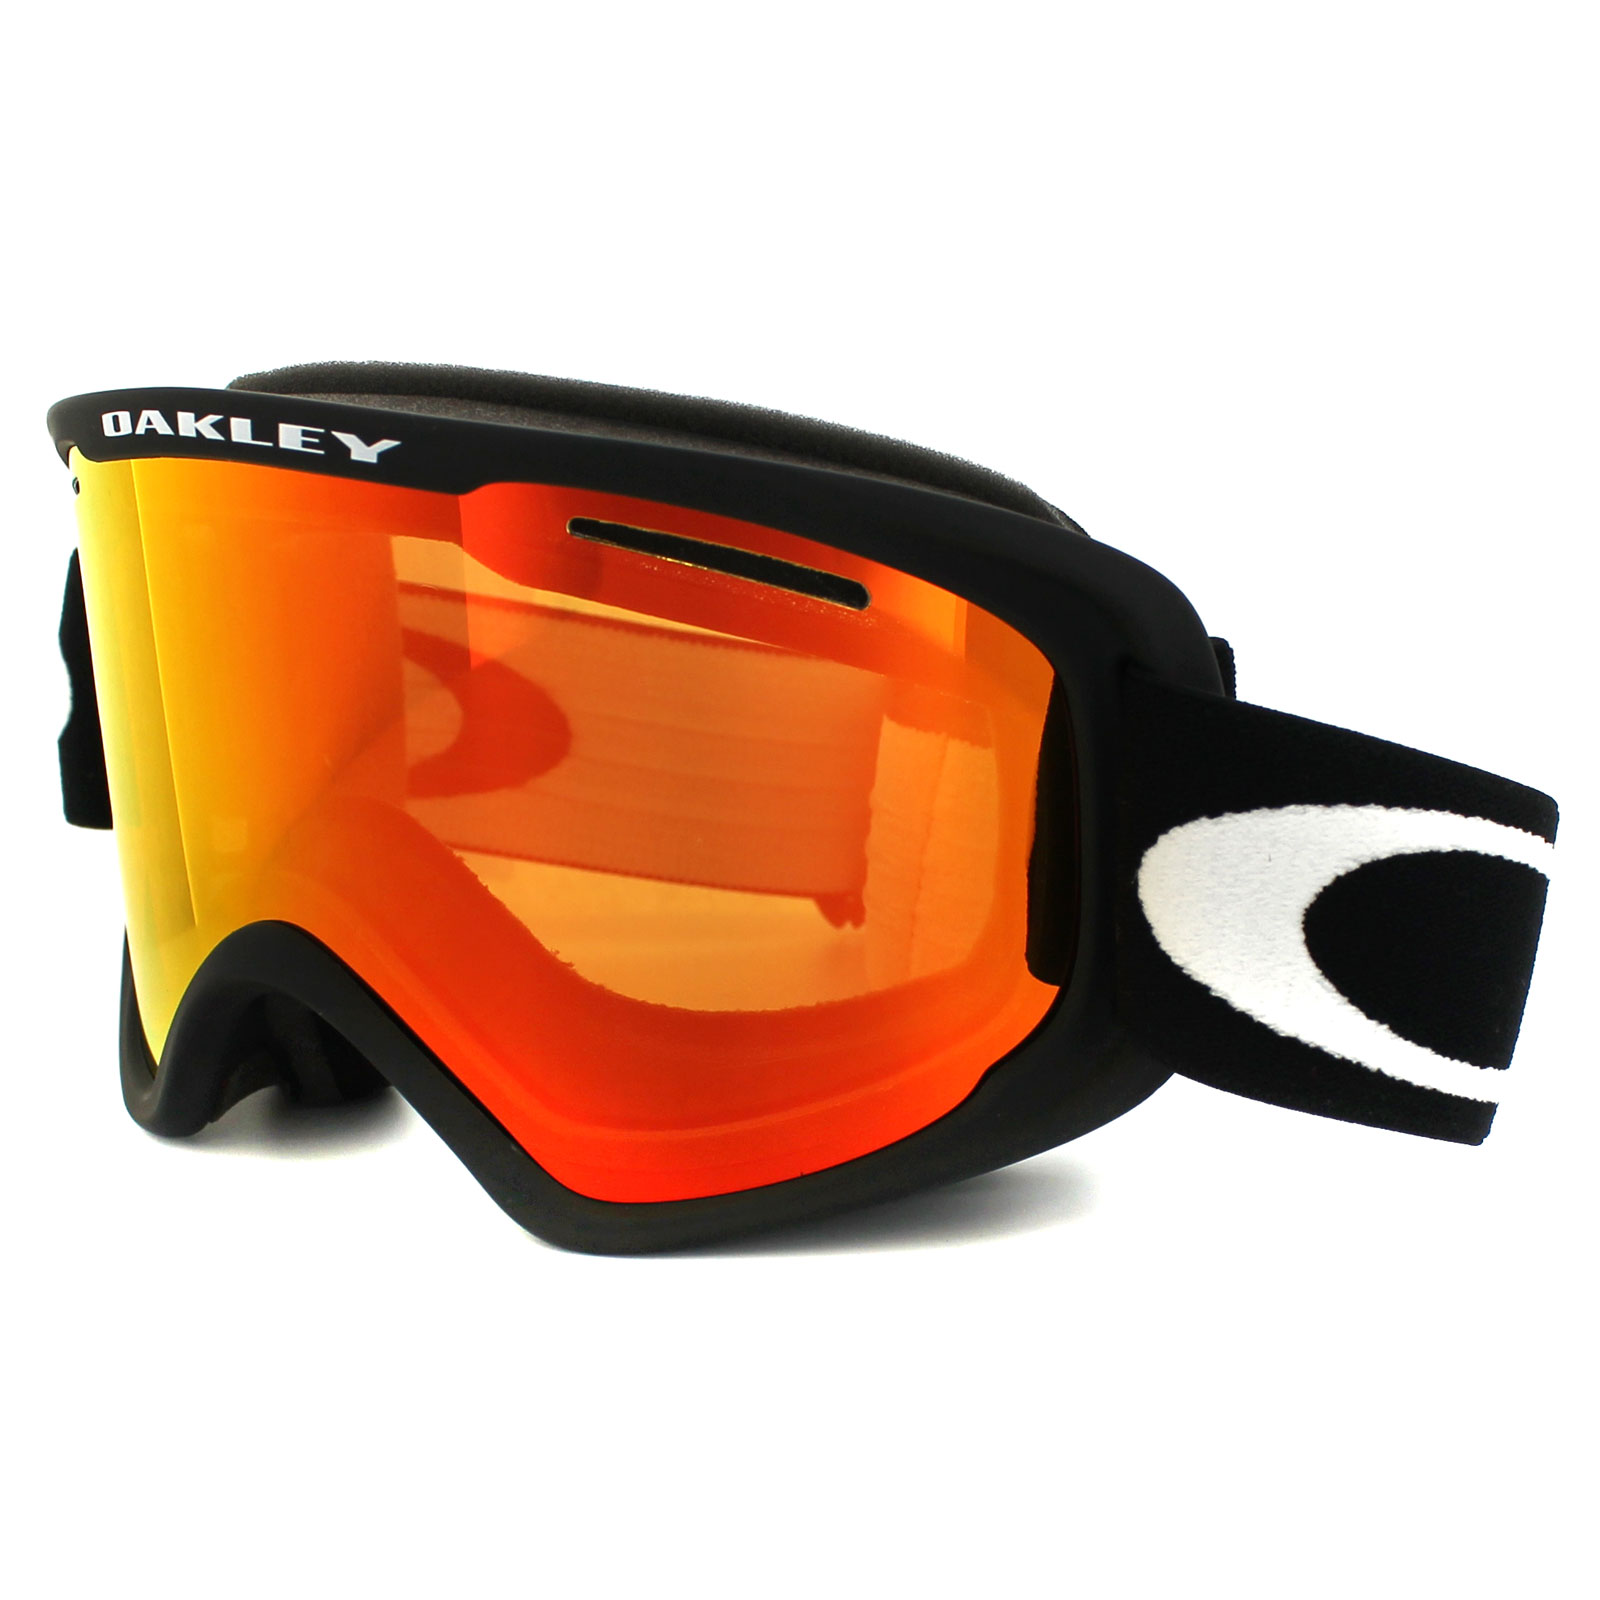 oakley ski goggles on sale  oakley 02 xm ski goggles